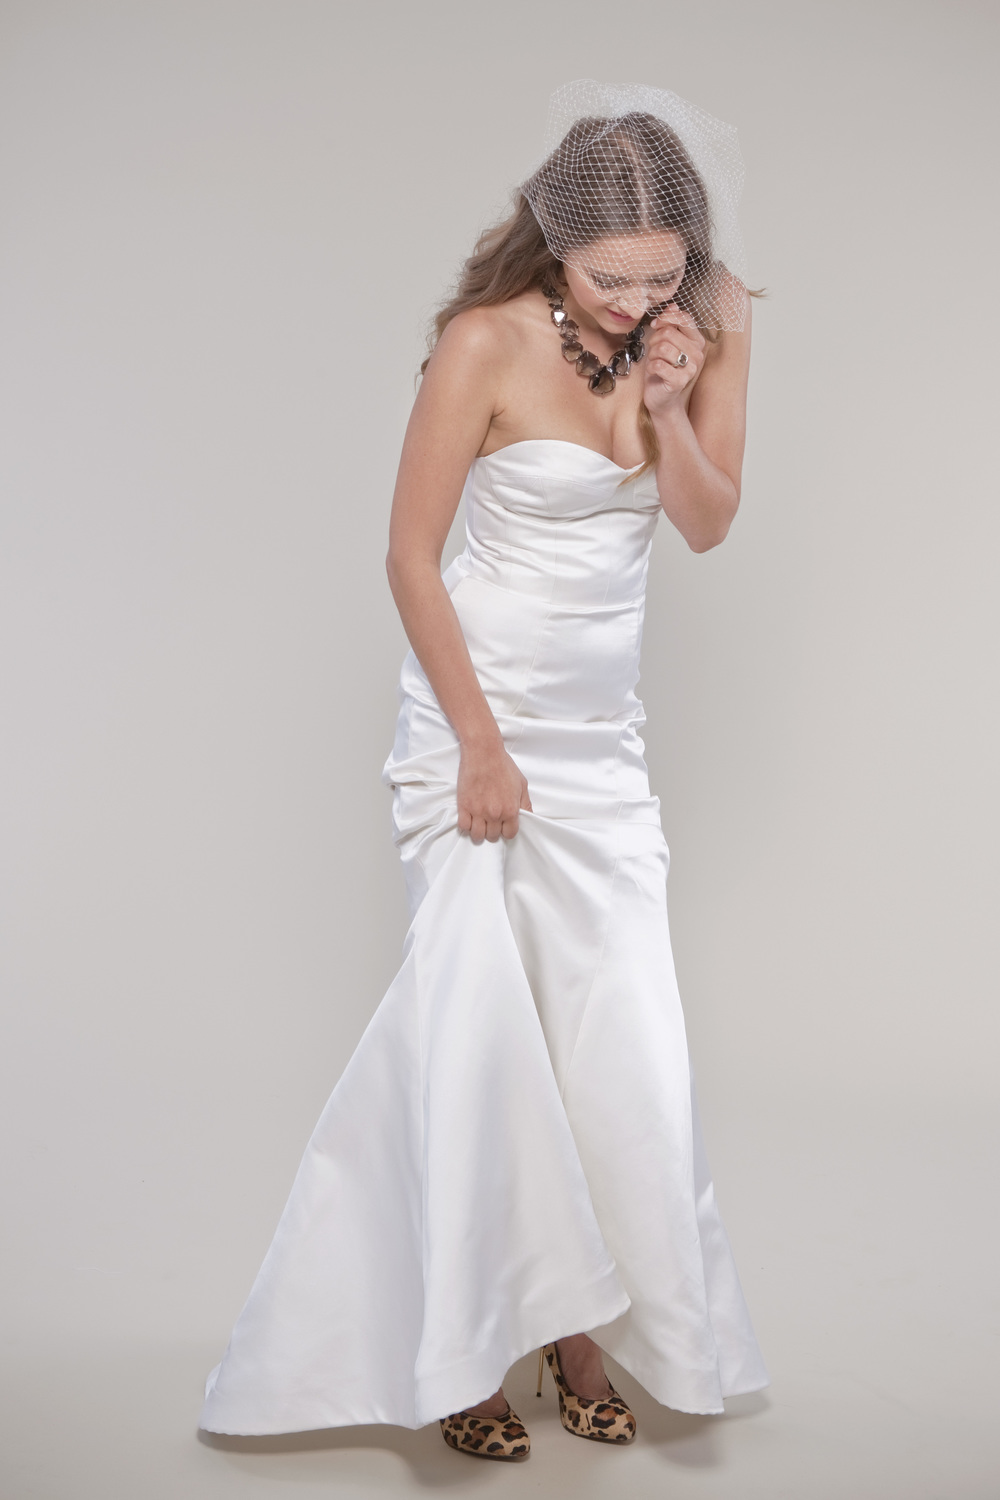 winifred bean calla lily mermaid wedding gown